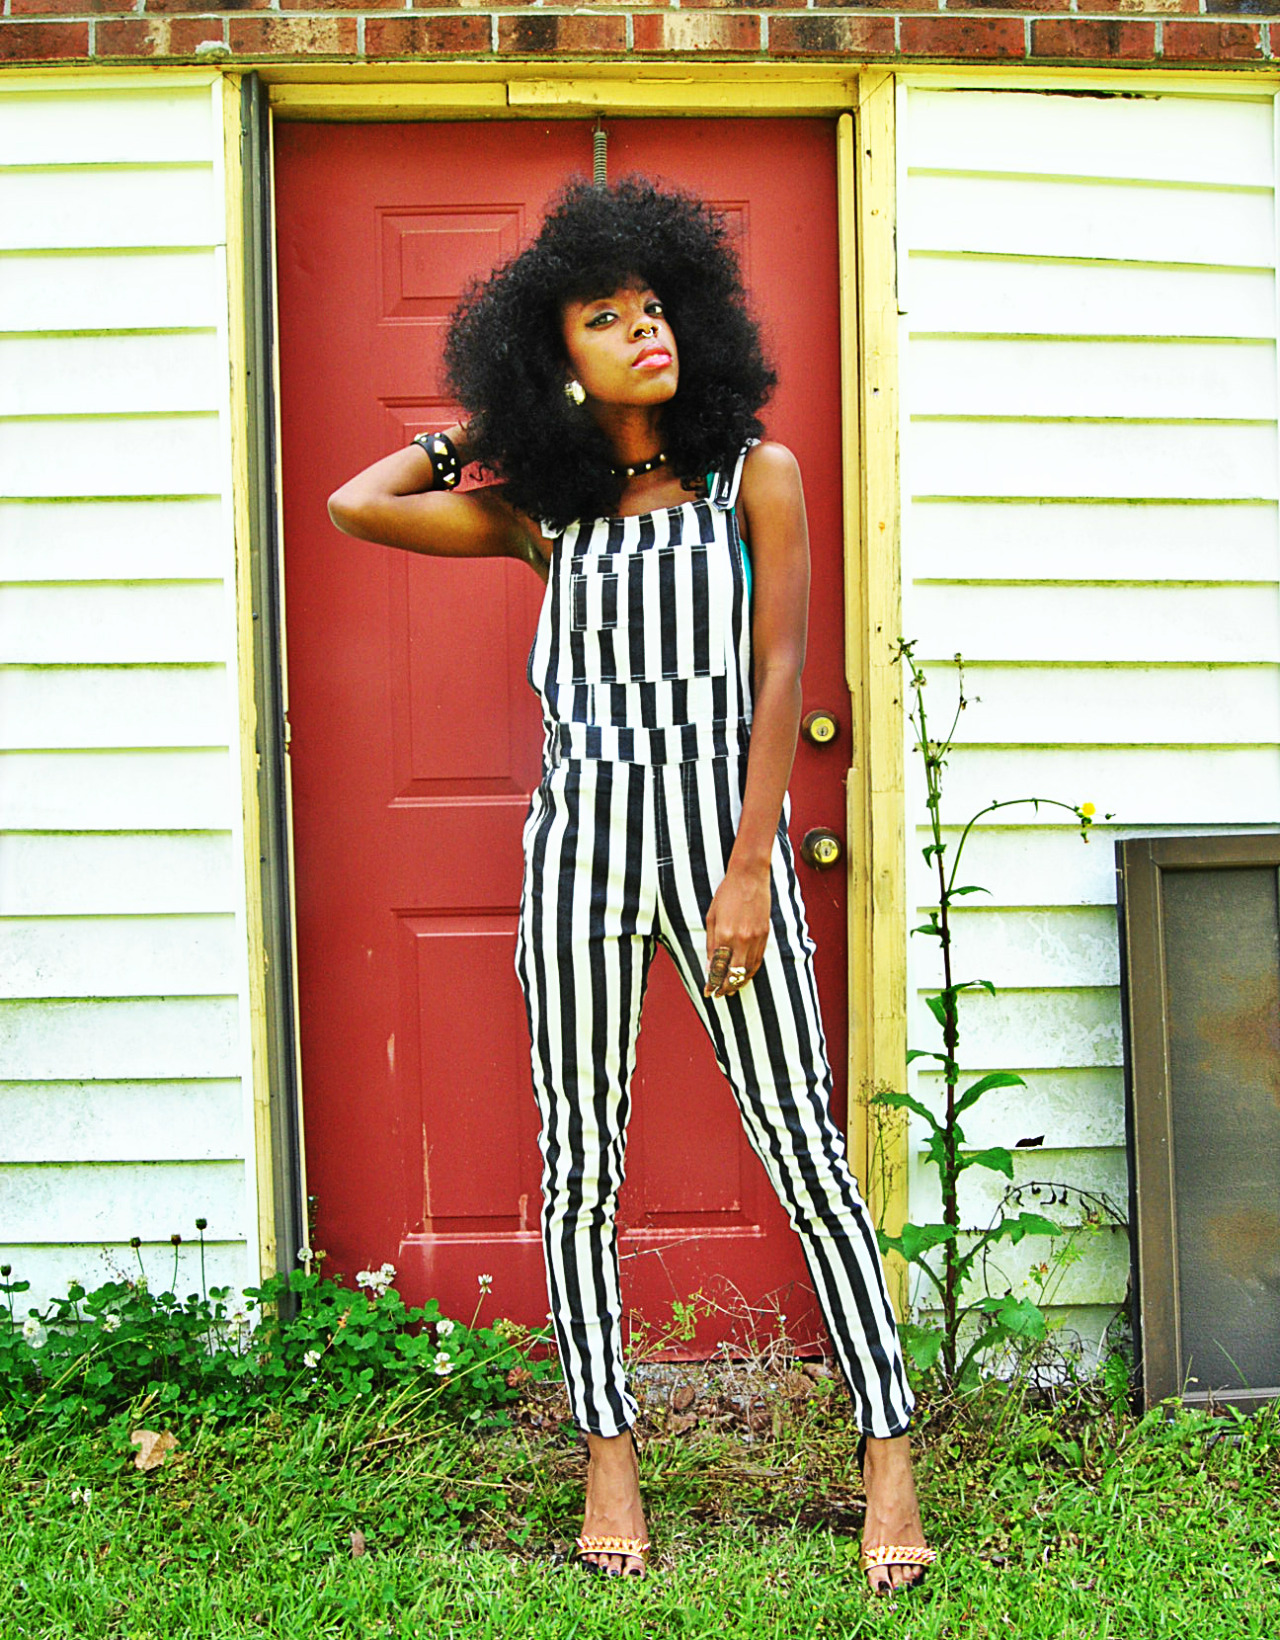 BEETLE JUICE, BEETLE JUICE, BEETLE JUICE! http://theskinnyfashionista.blogspot.com